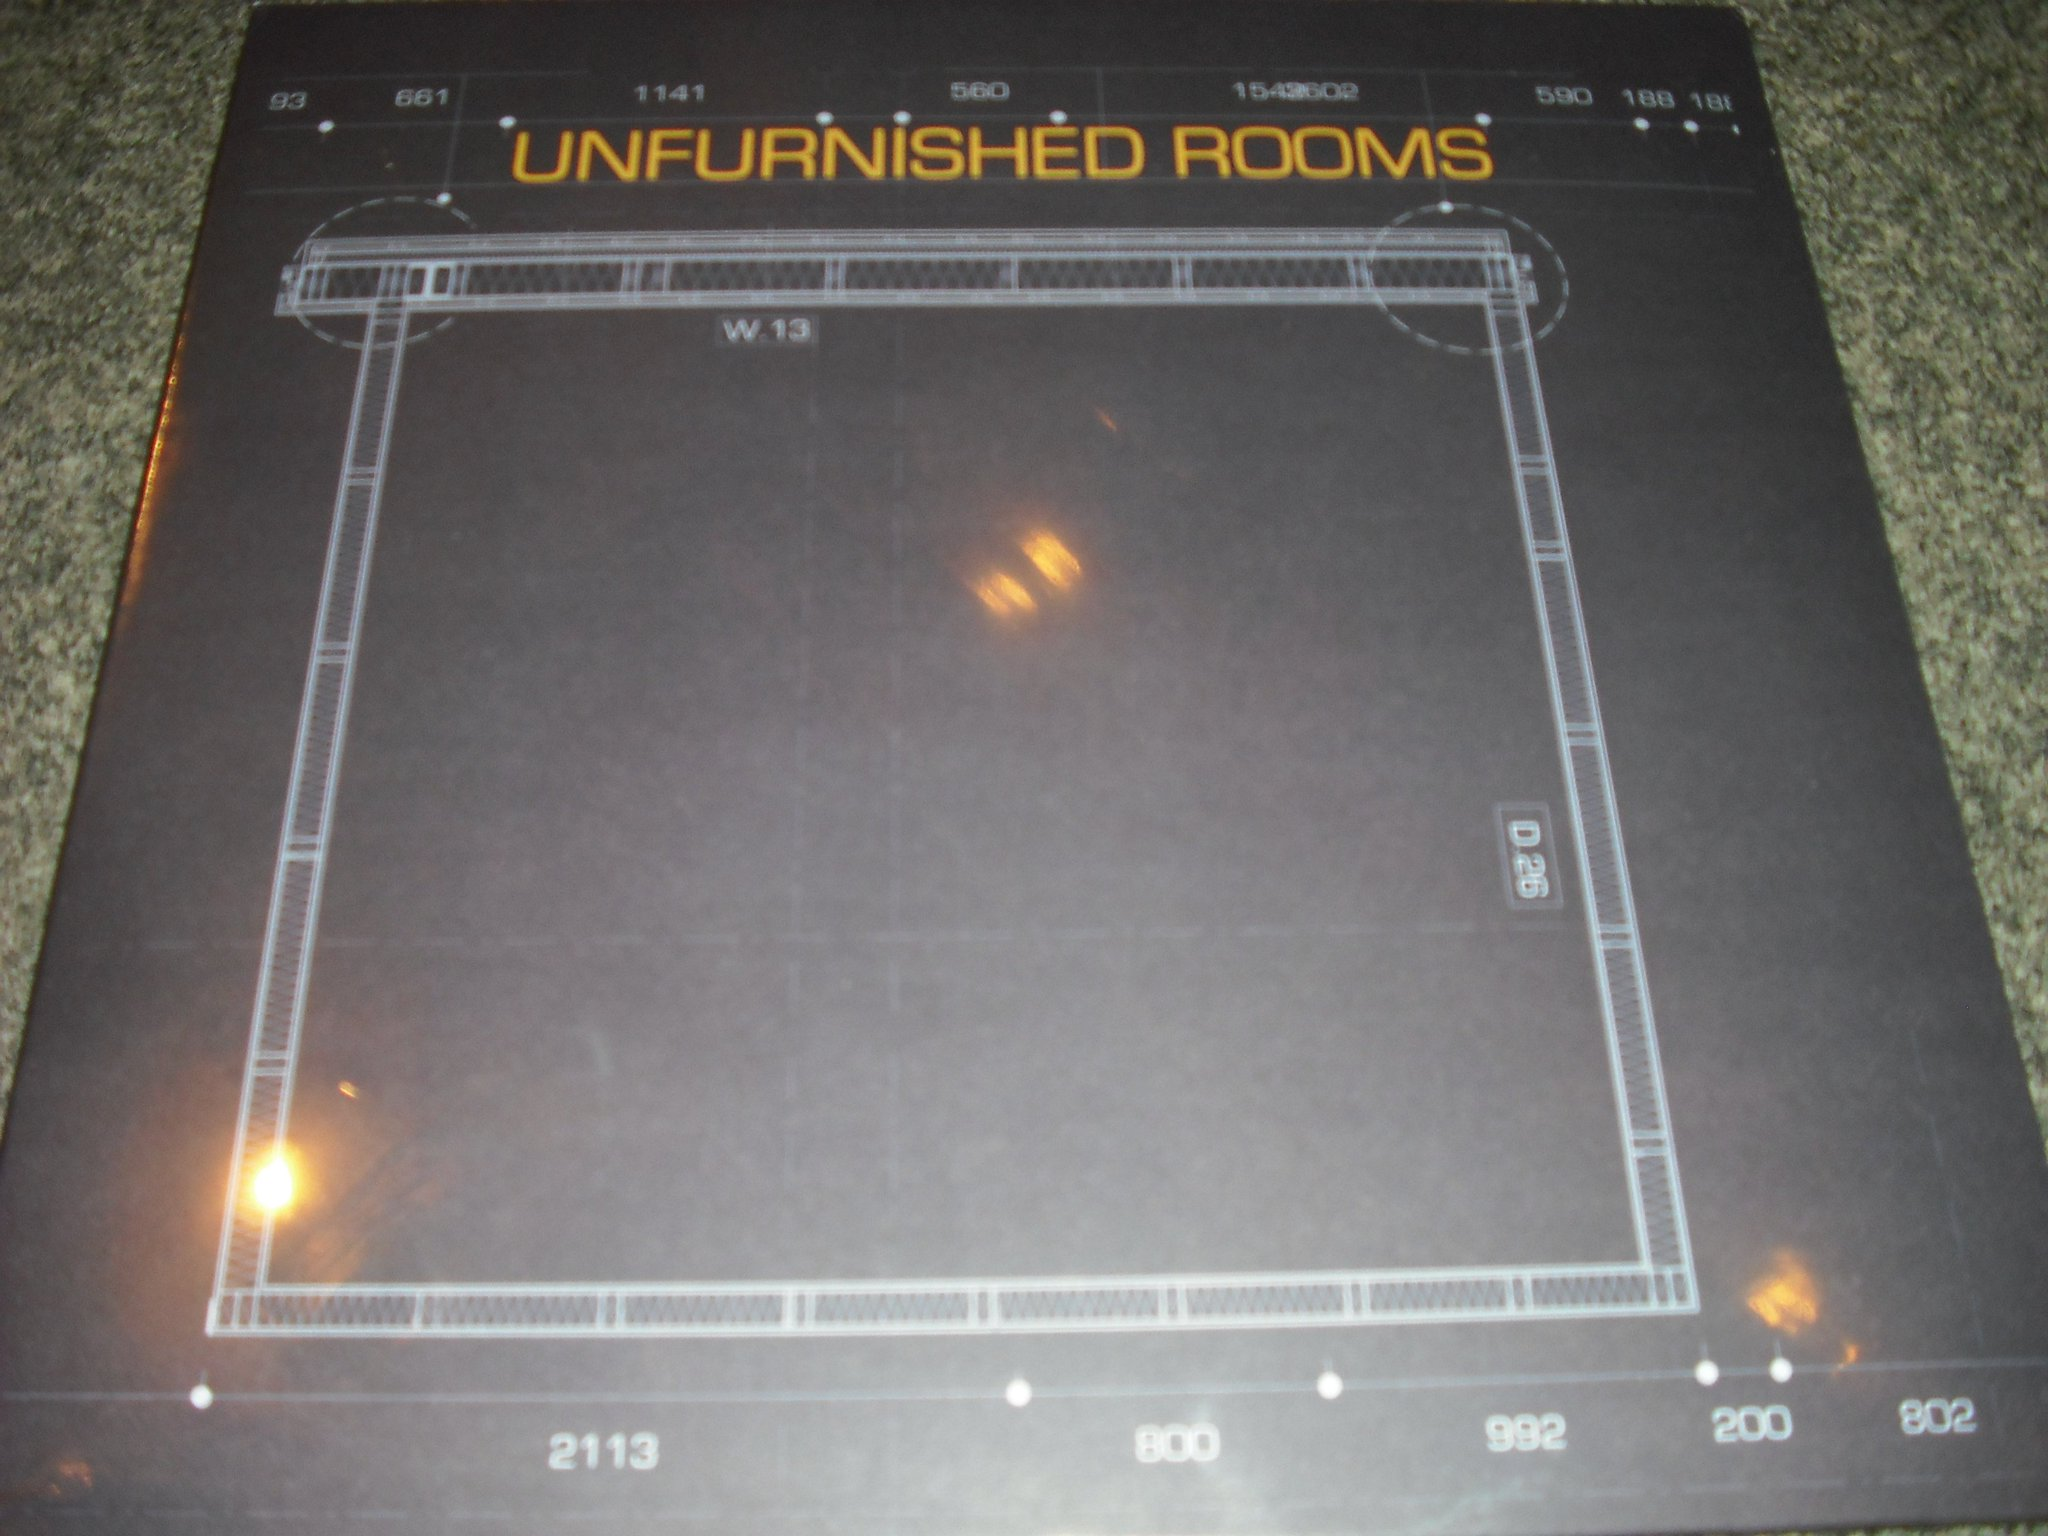 RT @101andyhibberd: The new @_Blancmange_ album Unfurnished Rooms is now in stock on vinyl as well as on CD https://t.co/lFUHP82ajX